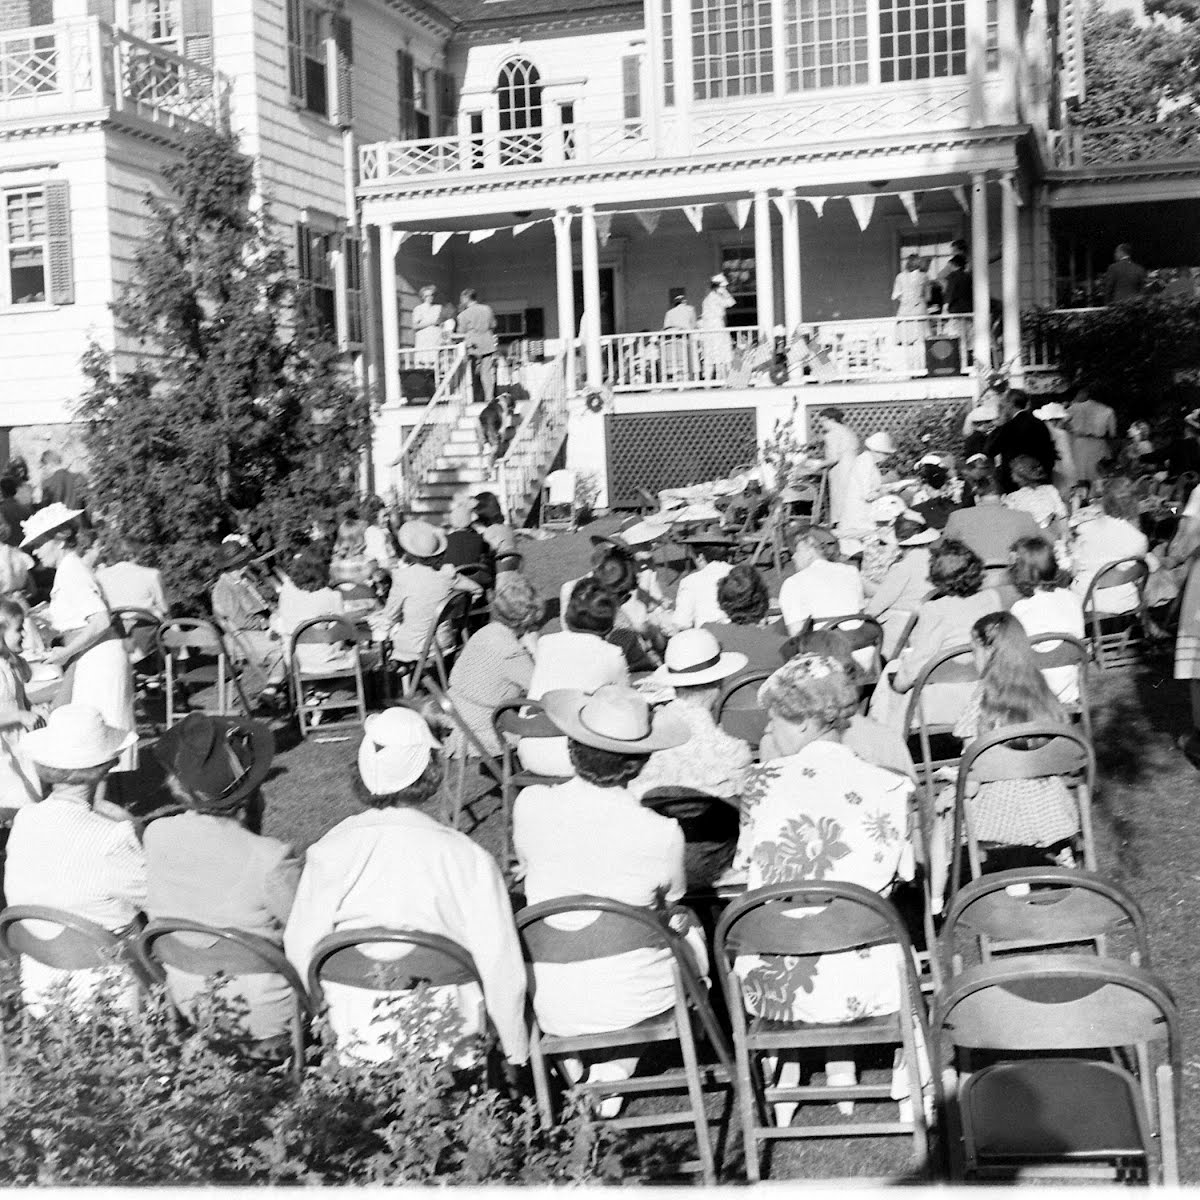 Ridgefield, Connecticut, Church Harvest Festival 1942